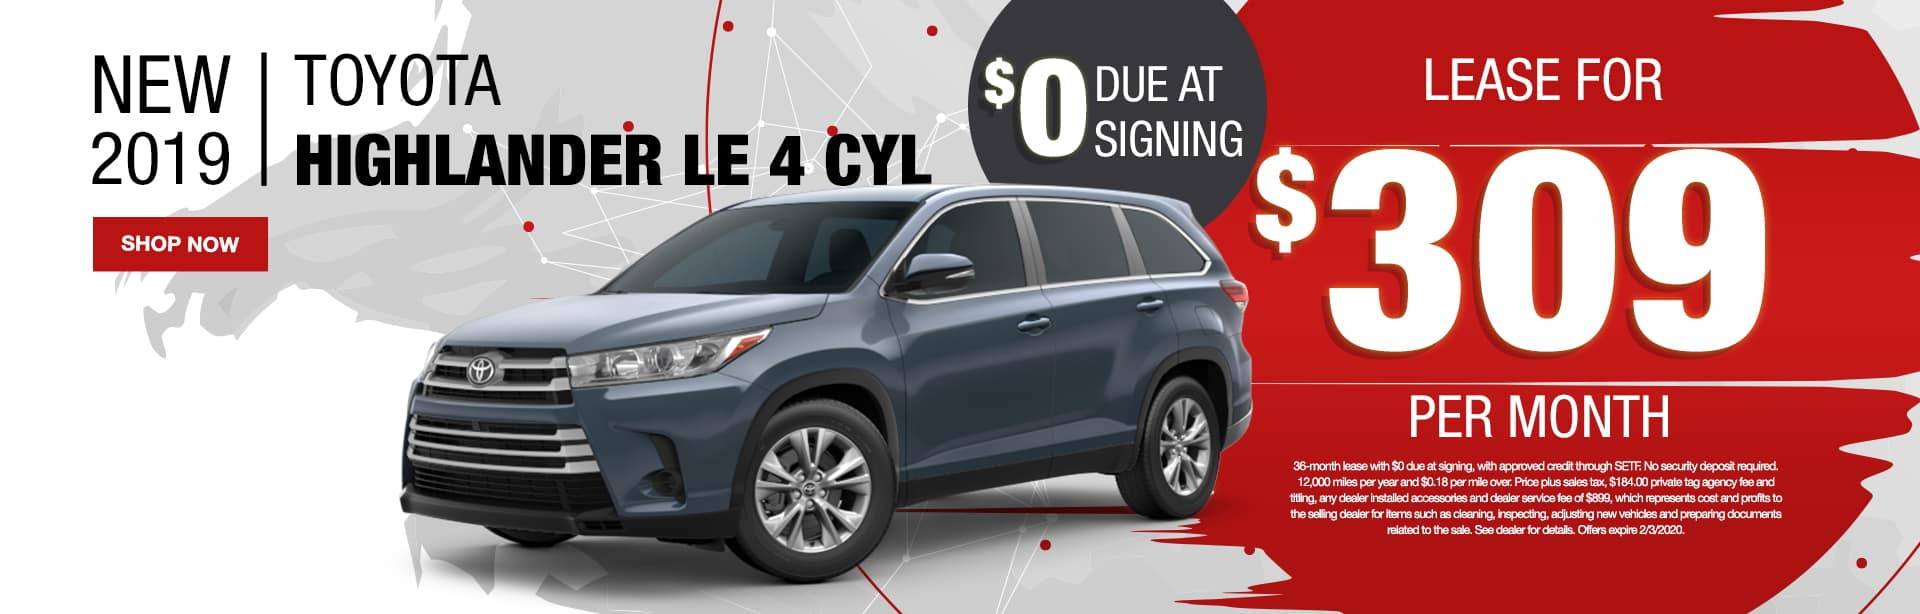 New 2019 Toyota Highlander LE 4 CYL | $0 Due At Signing | Lease For $309 Per Month